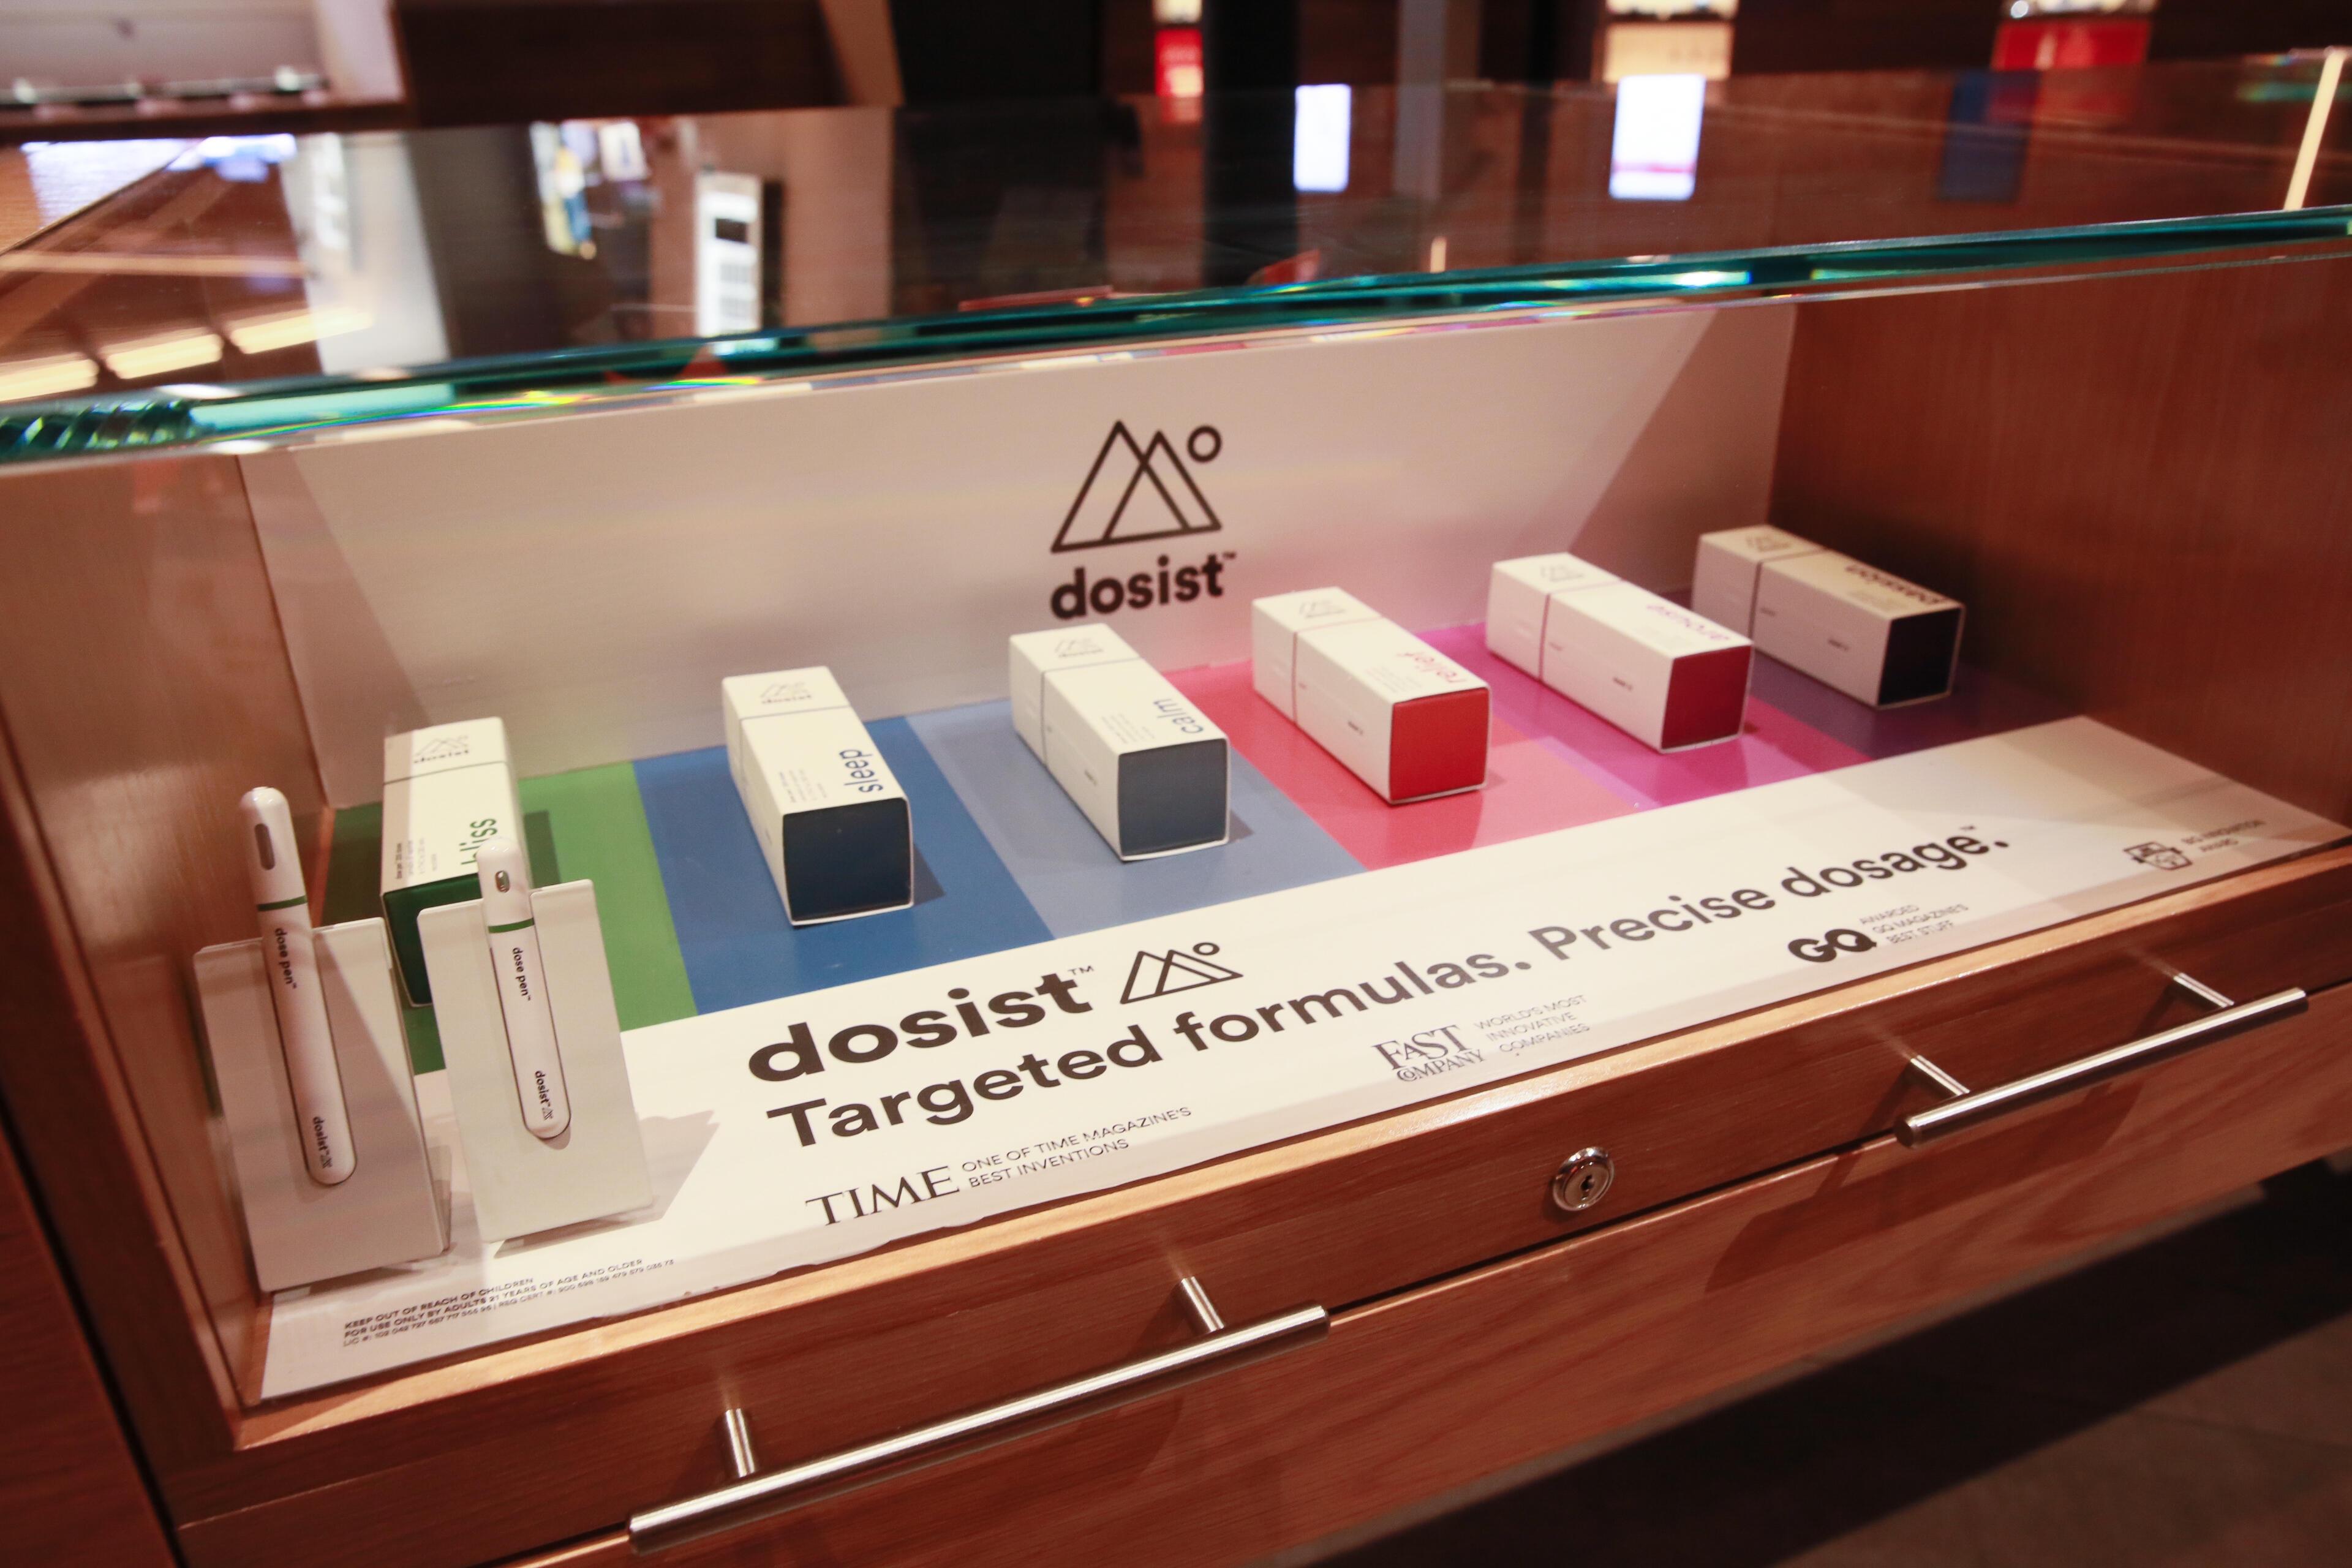 The Dosist was also pointed out to me as being pretty impressive technology. It can start out a user with lower doses and has various settings controlled through an app.